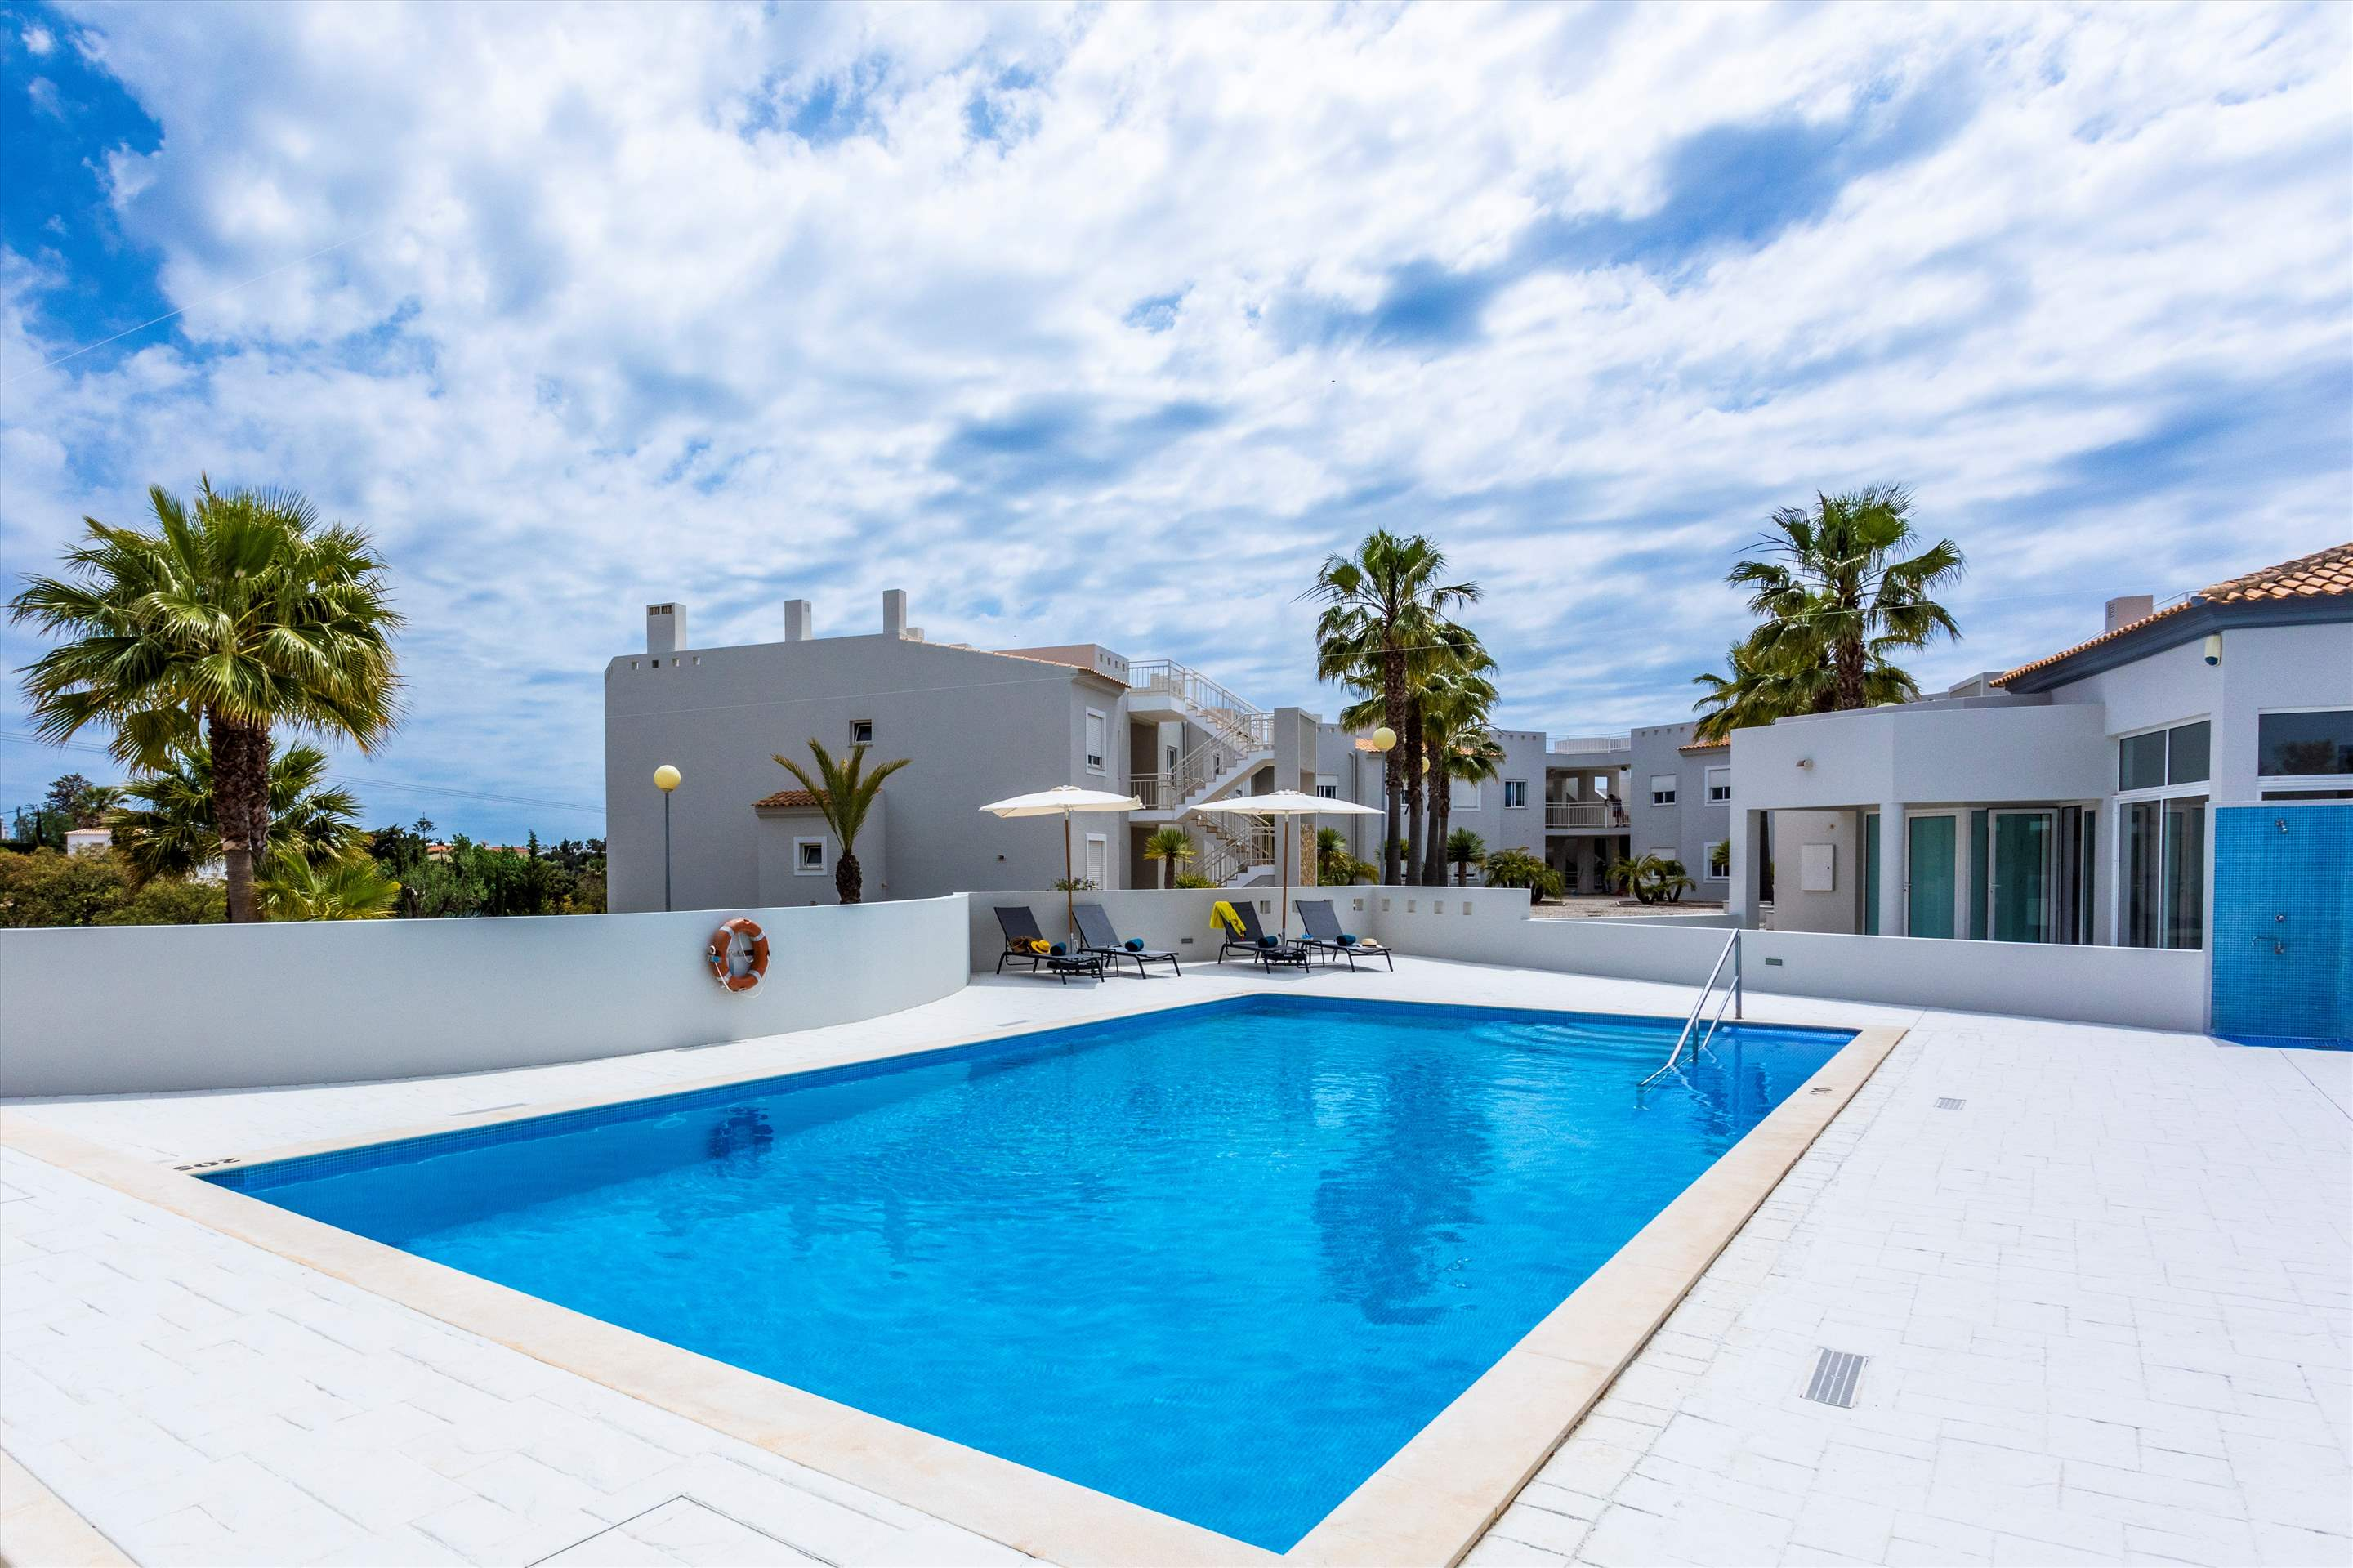 Placid Village, Two Bedroom Apartment , 2 bedroom apartment in Carvoeiro Area, Algarve